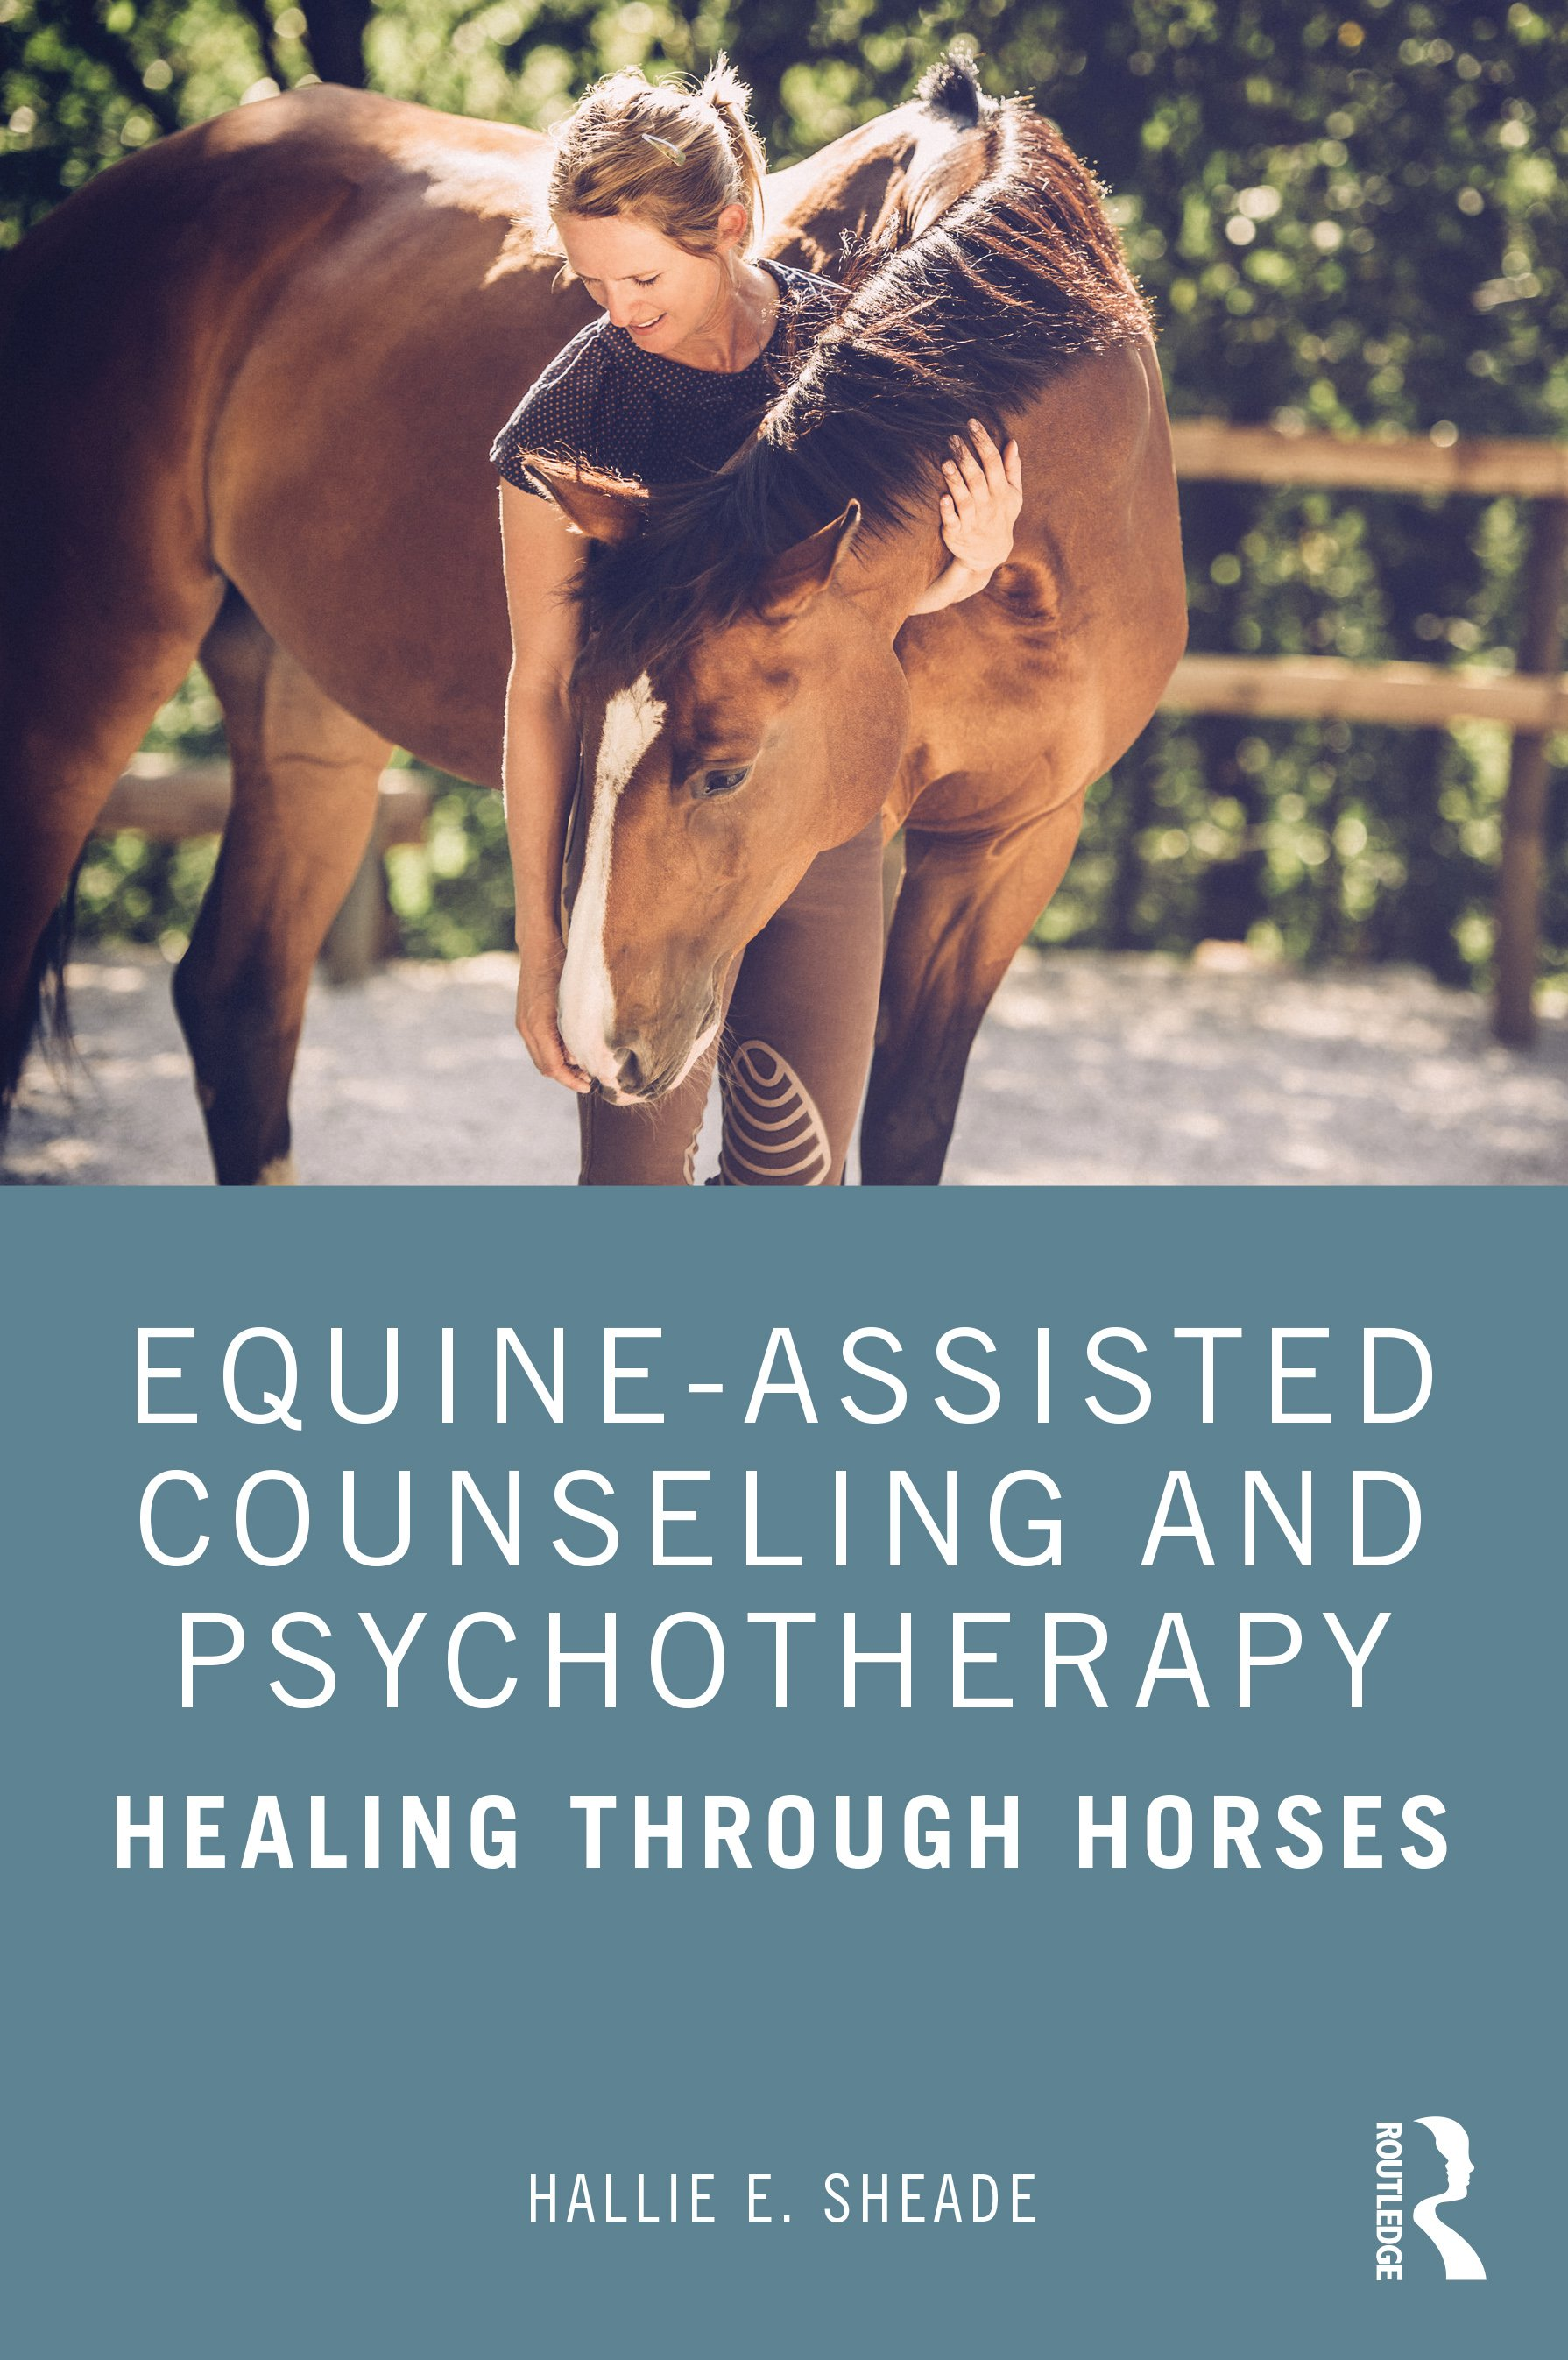 Equine-Assisted Counseling and Psychotherapy: Healing Through Horses book cover